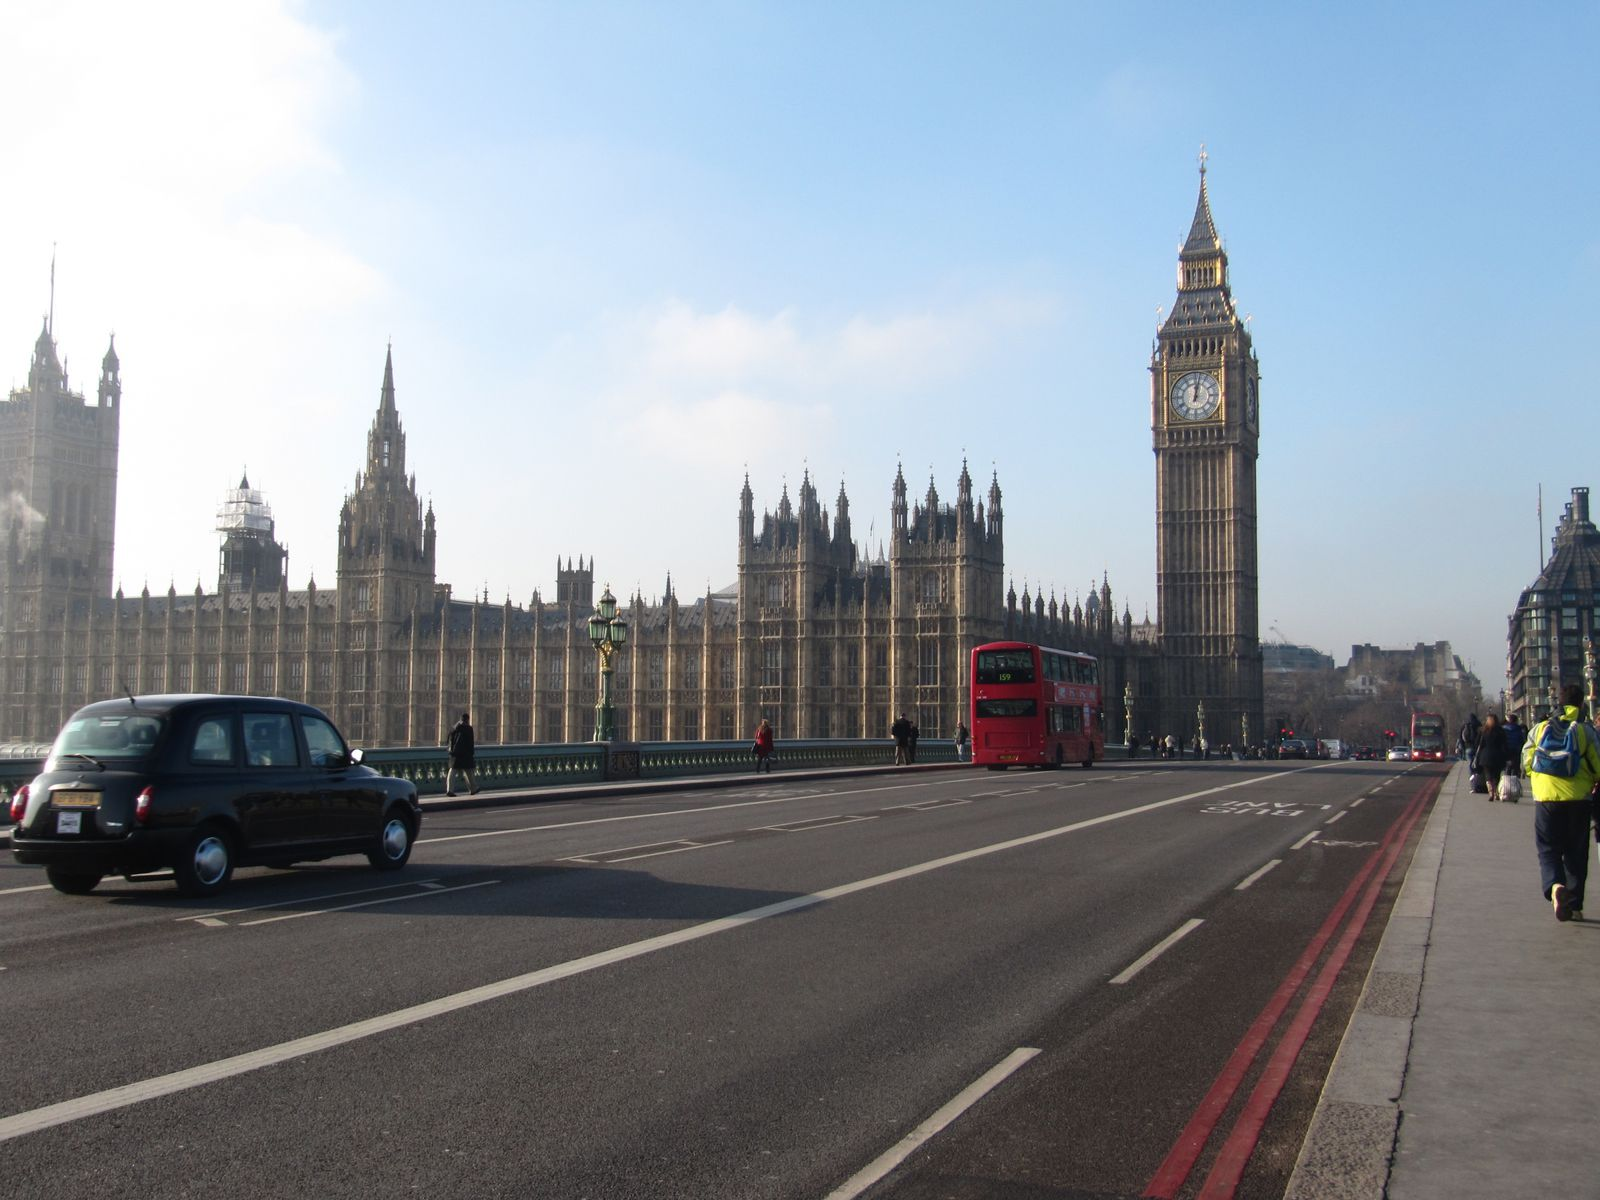 The House of Parliament